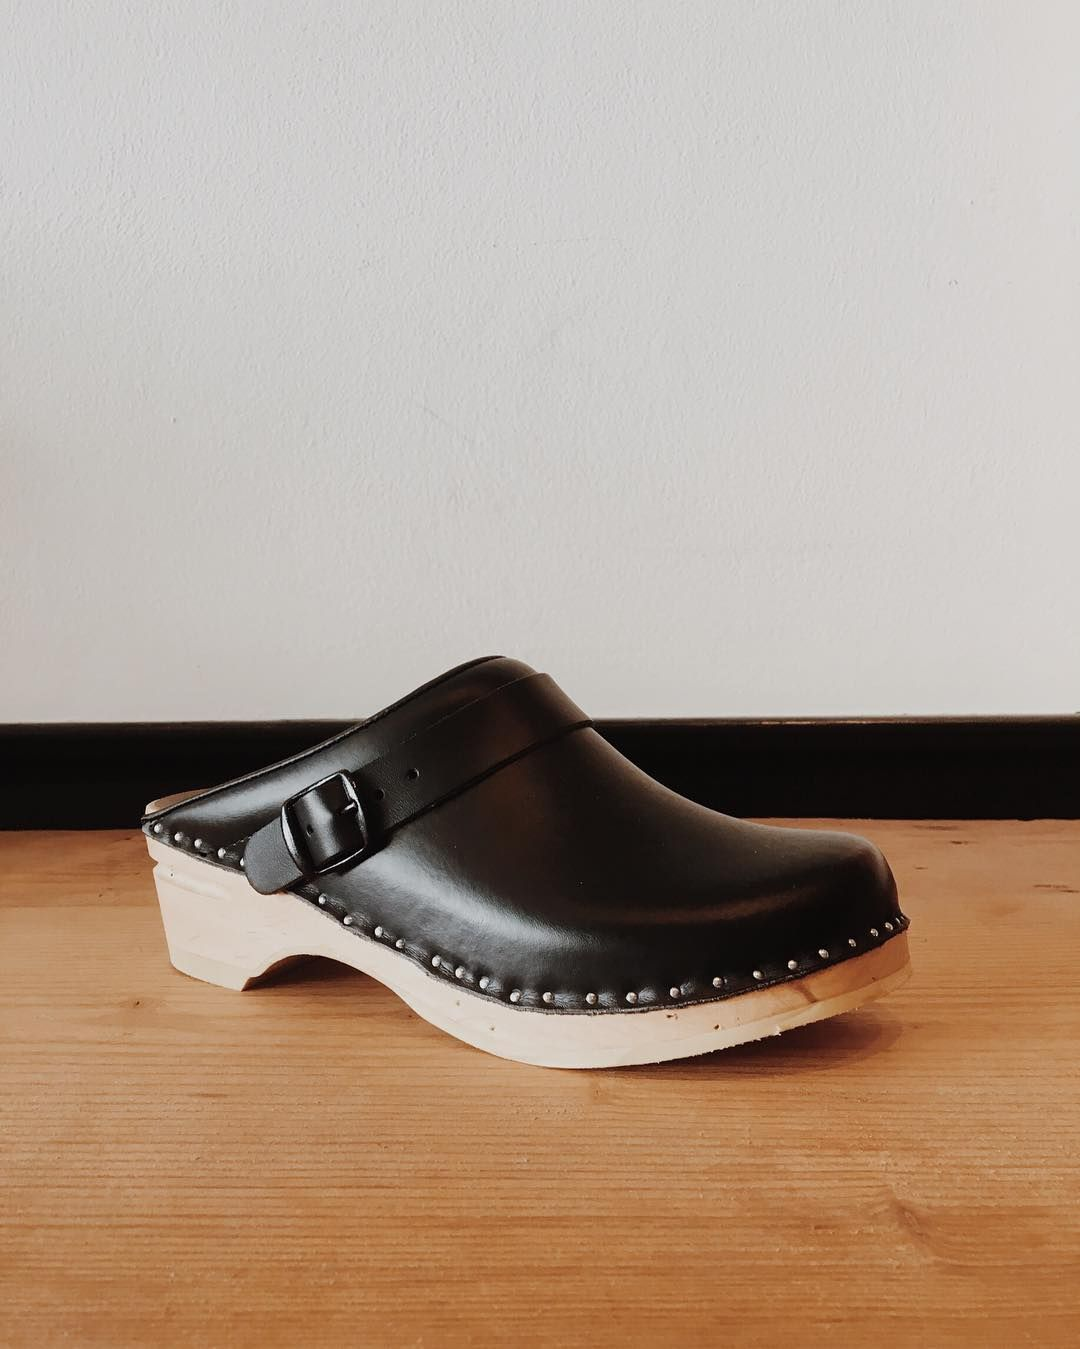 The same handcrafted clogs from over